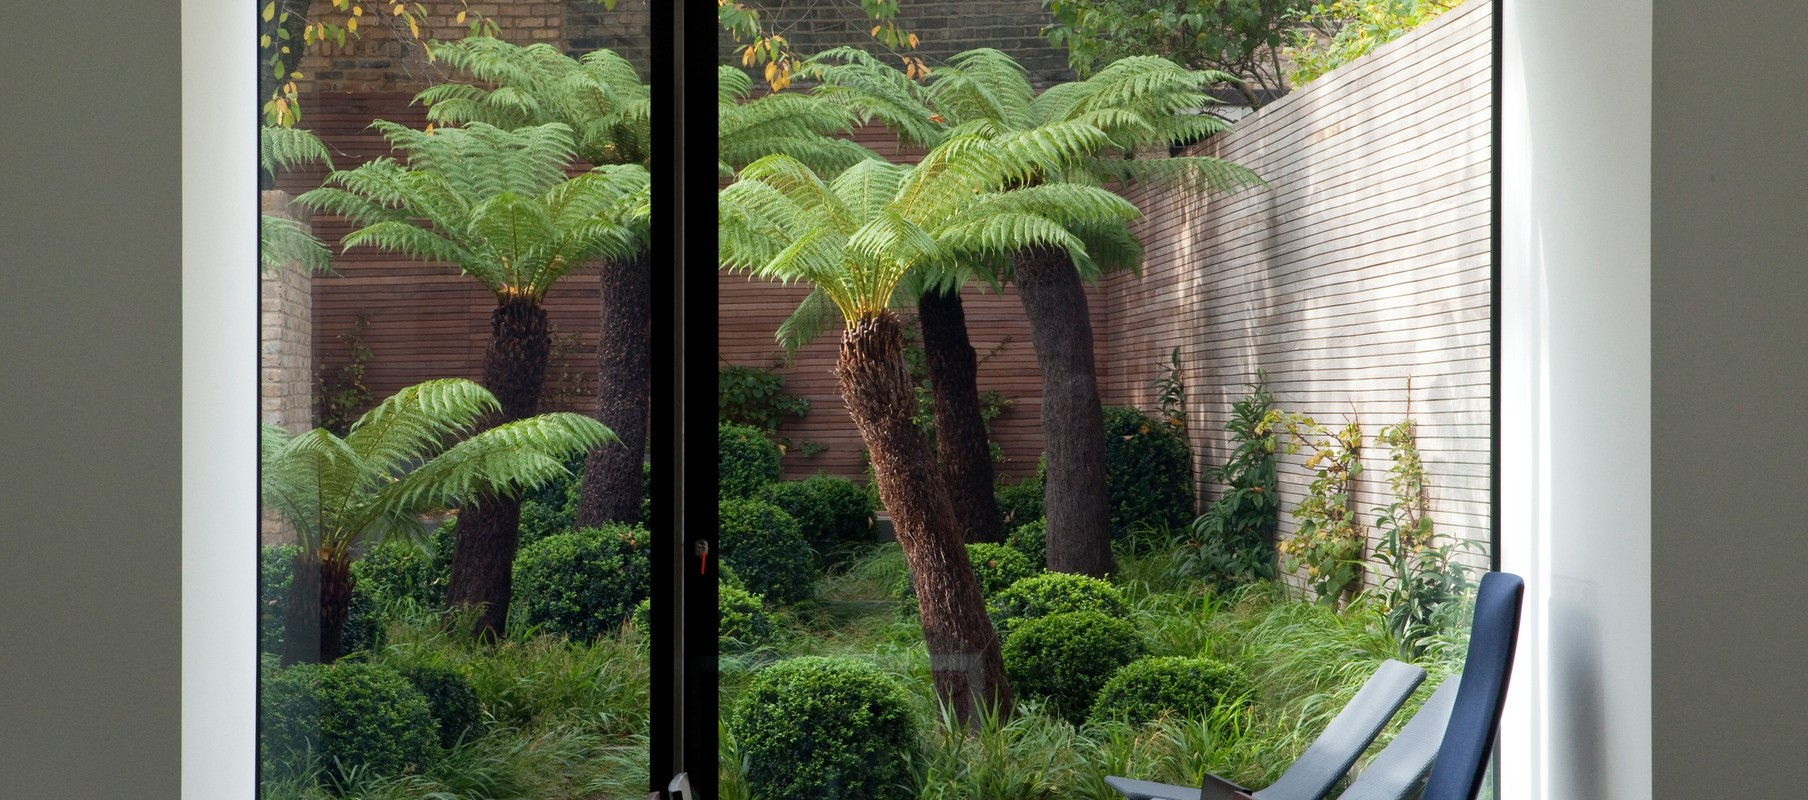 Garden with palm trees pictured from inside